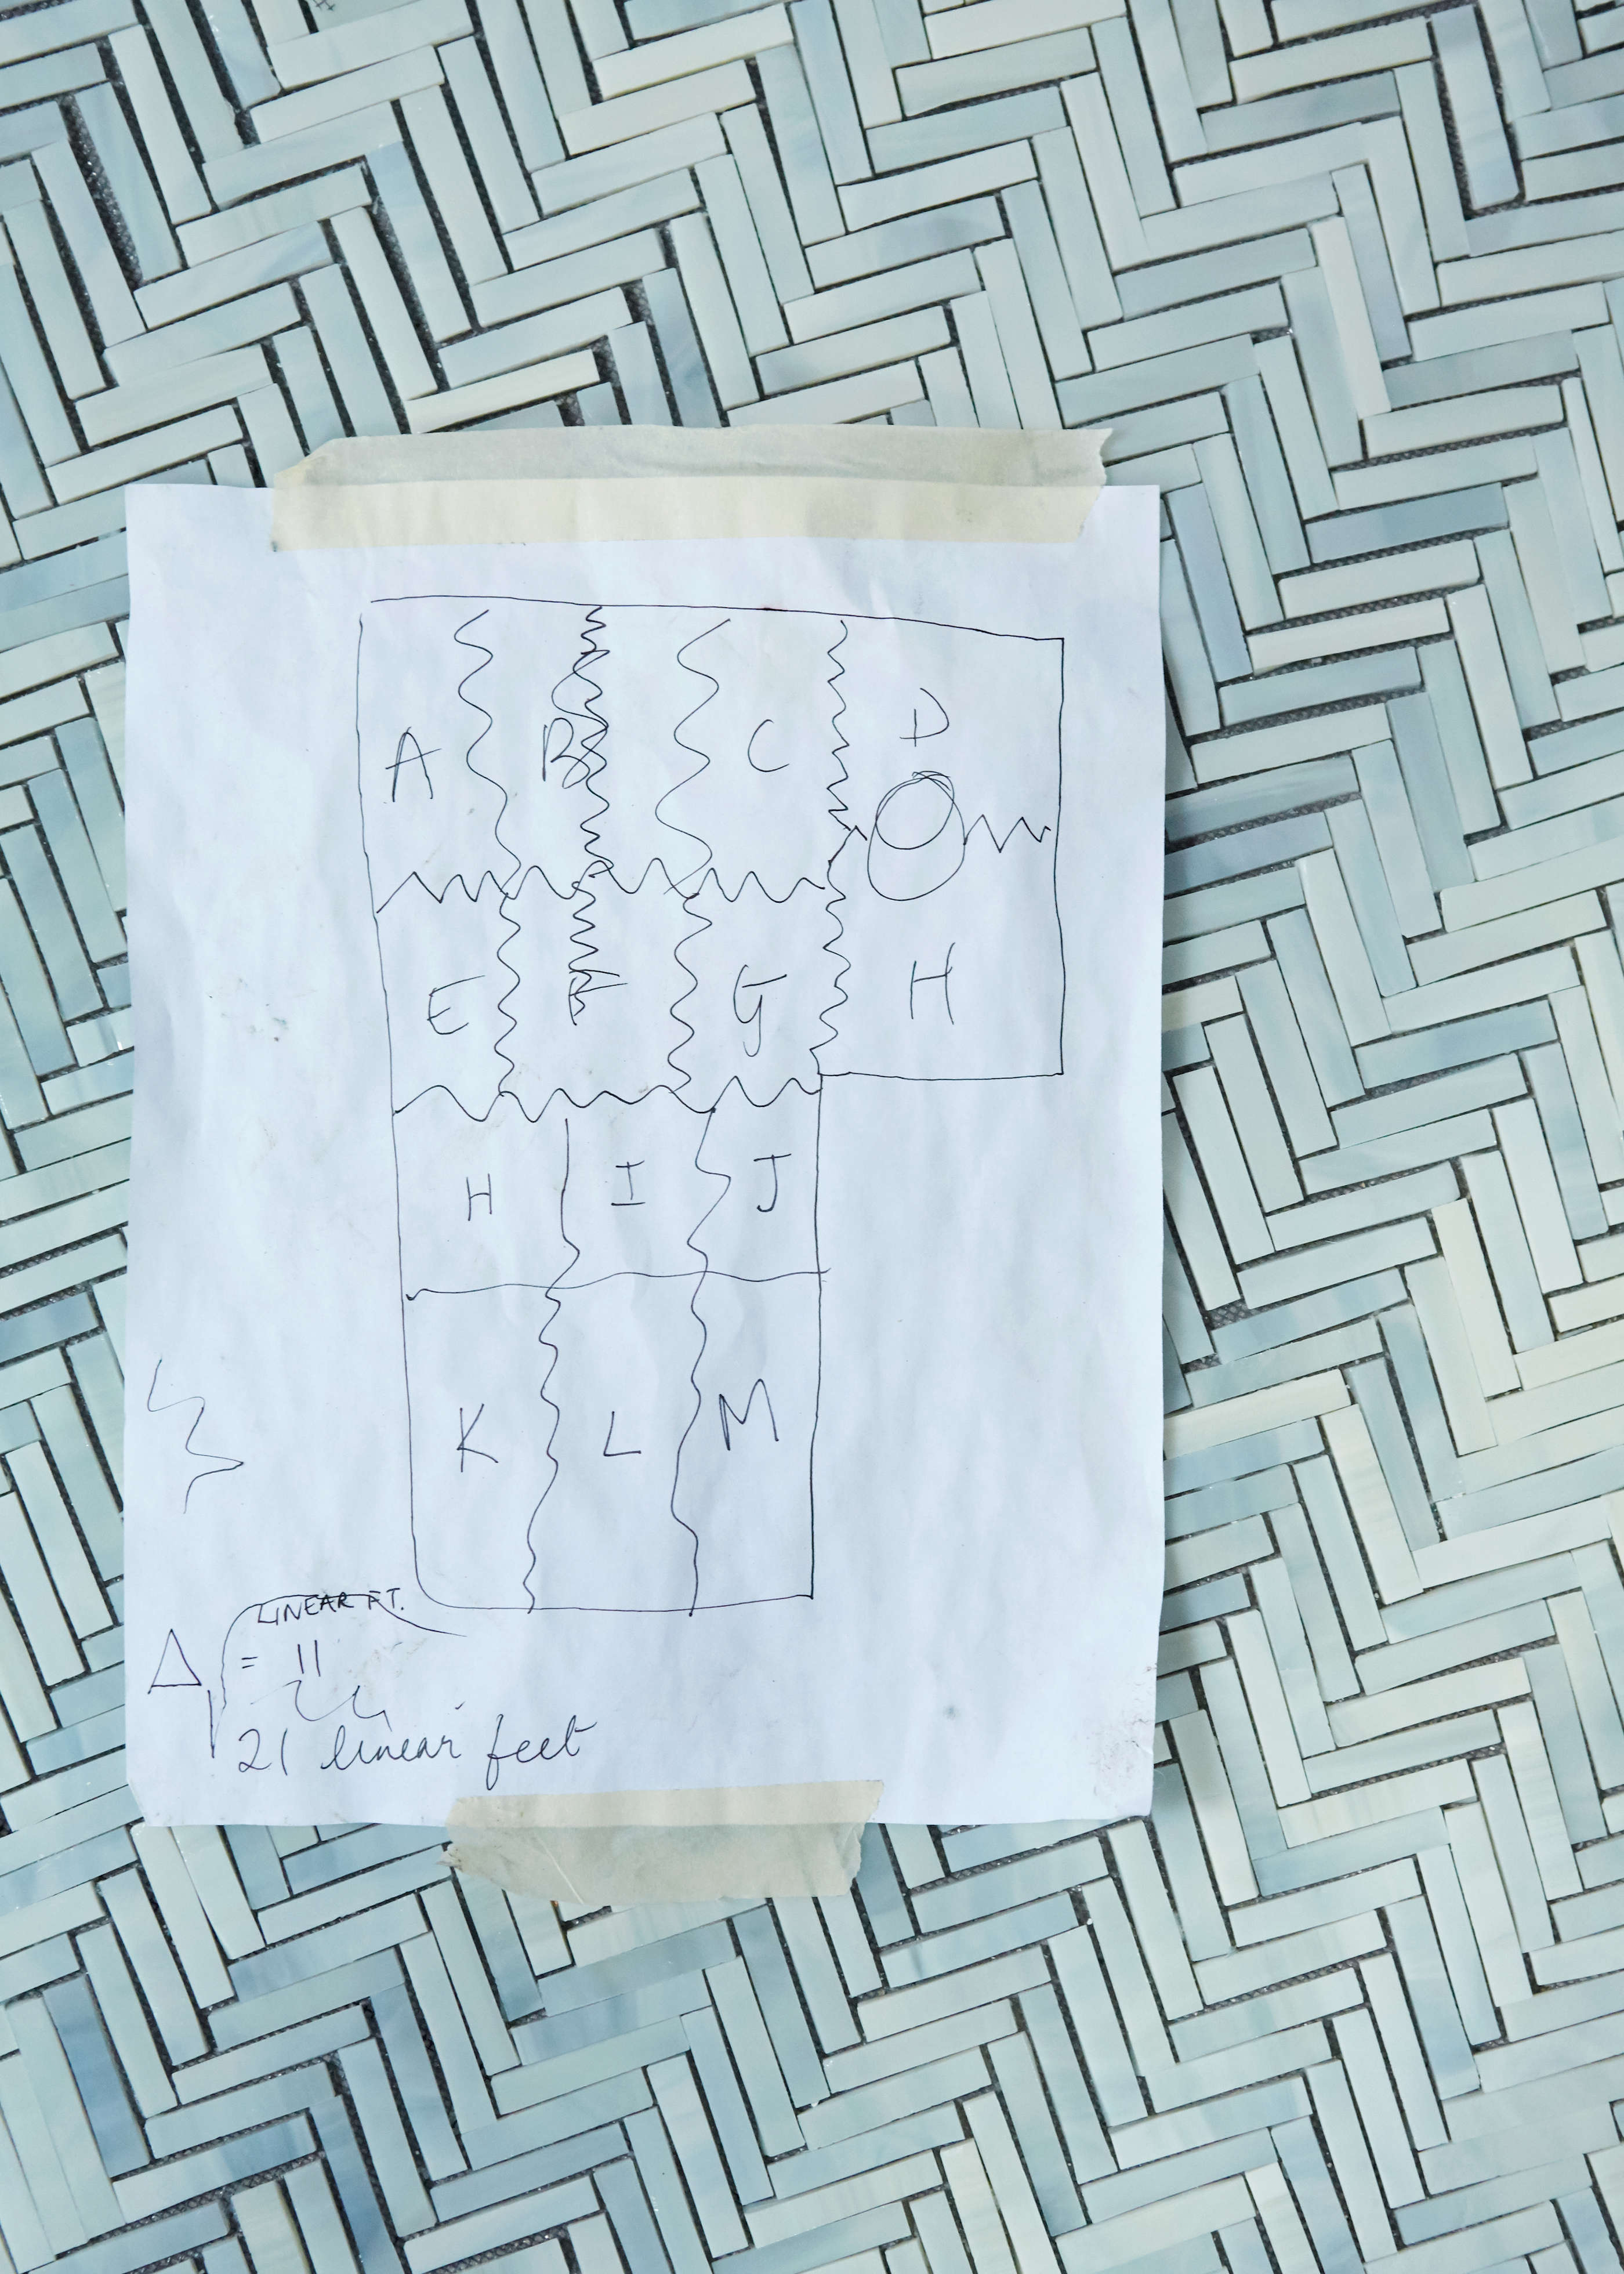 In her studio, Myers adheresthe pattern onto a fiberglass mesh that she then cuts into outsized puzzle-like pieces—each labeled with a corresponding letter—for transport to the site. Shown here is a map of how she broke up the floor.